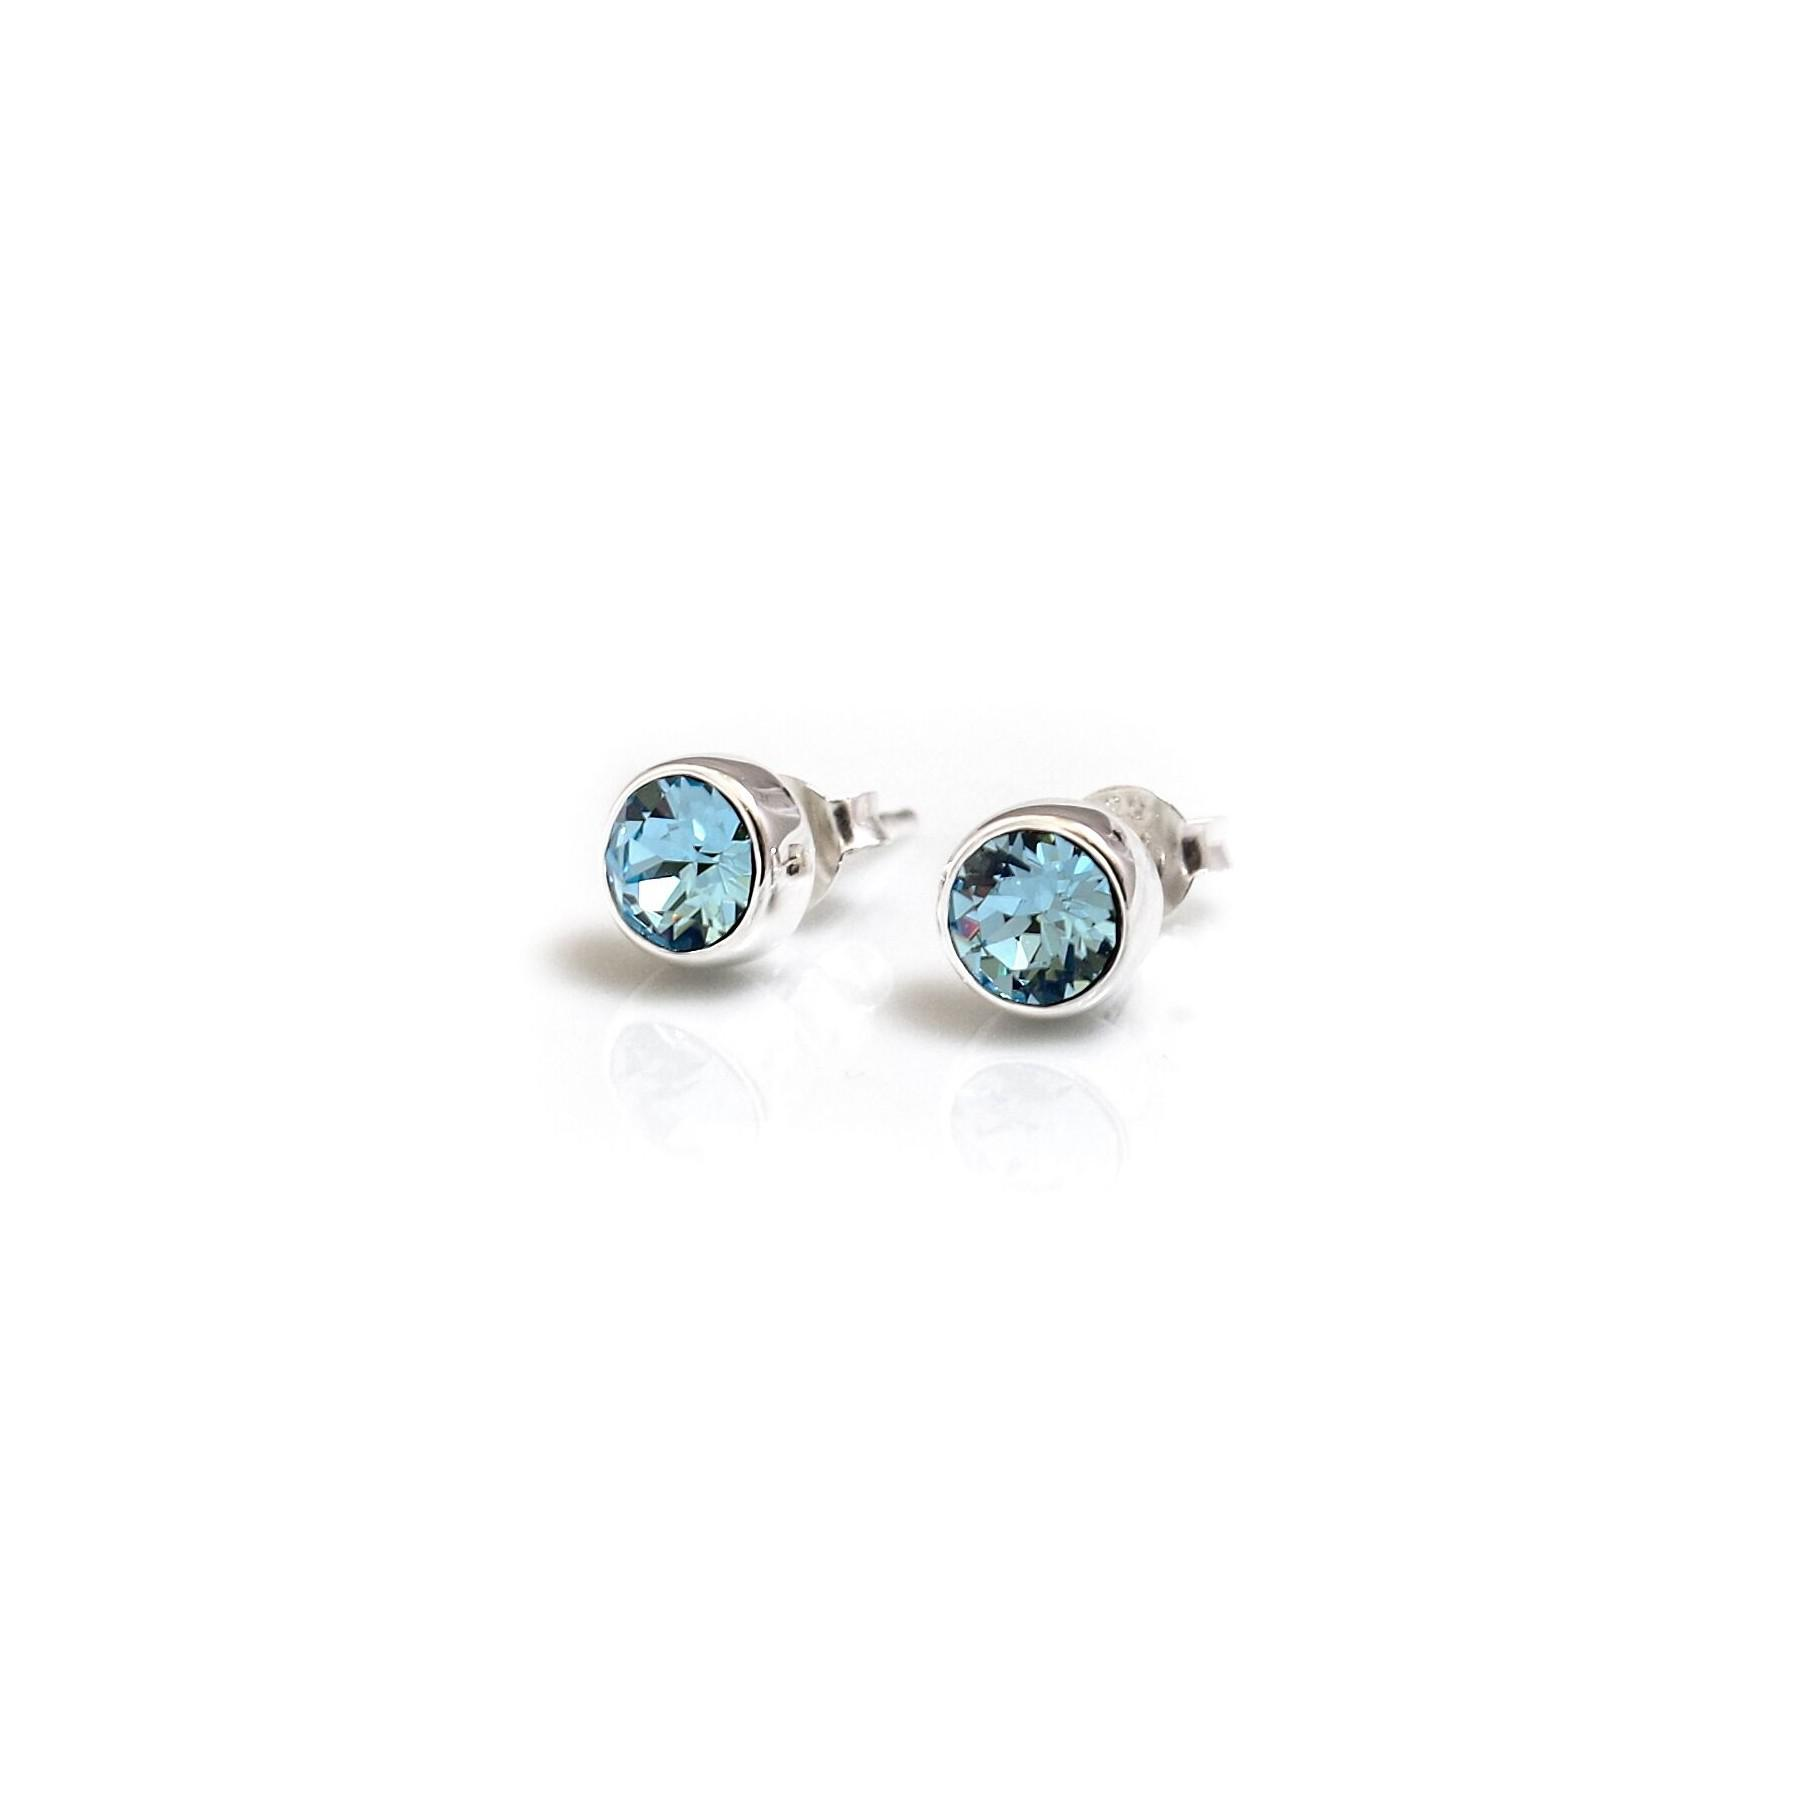 white vian lyst silver s jewelry diamond marine octagon gold metallic women le aqua stud aquamarine earrings